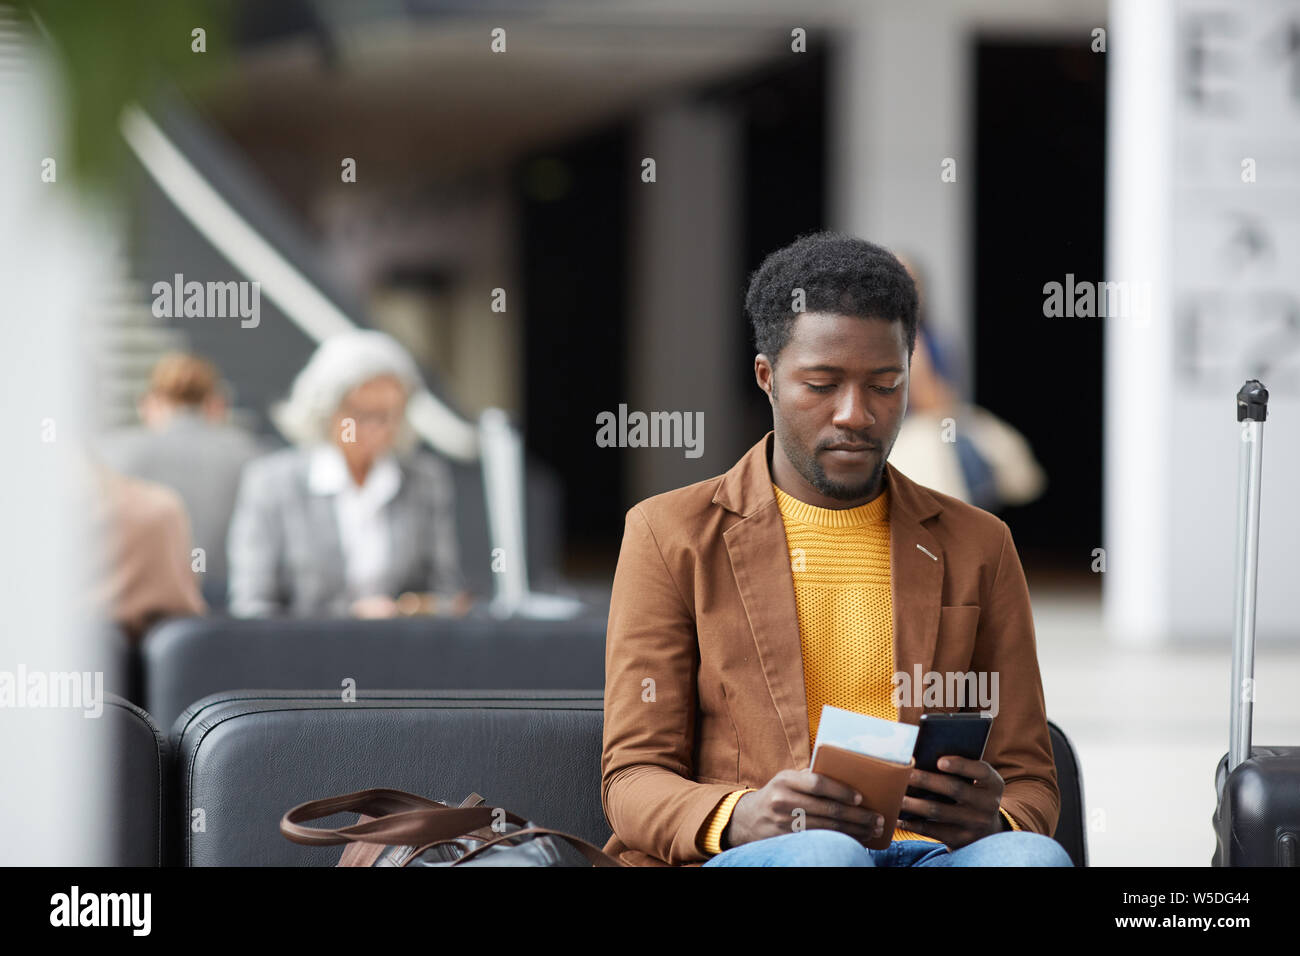 Serious pensive young black man with beard sitting in airport and communicating via online app on phone Stock Photo